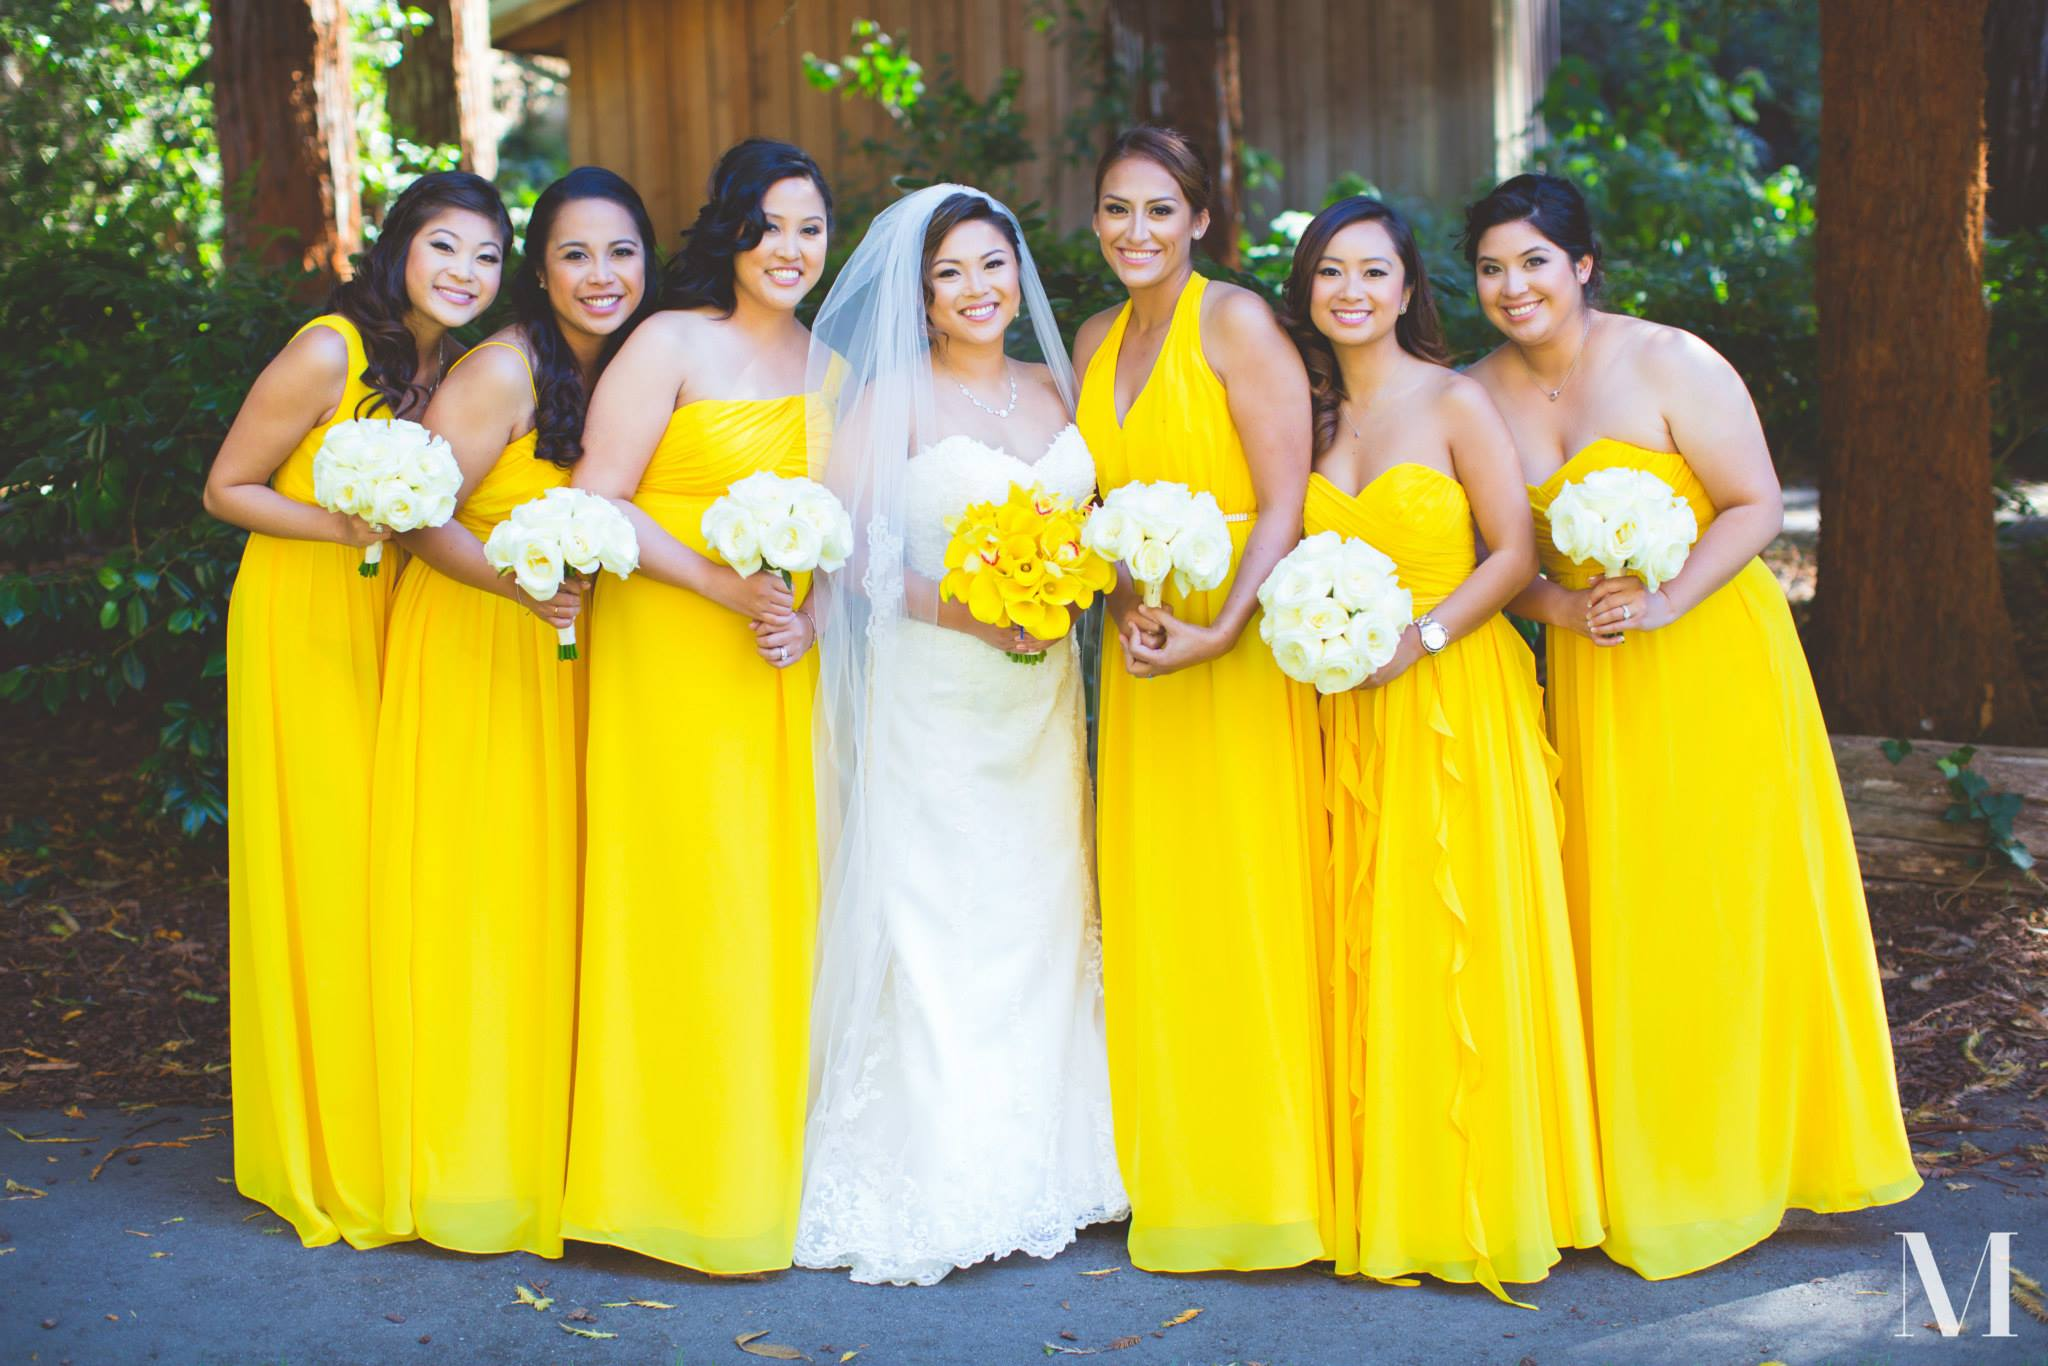 Allison Jimenez and bridal party 9-5-15